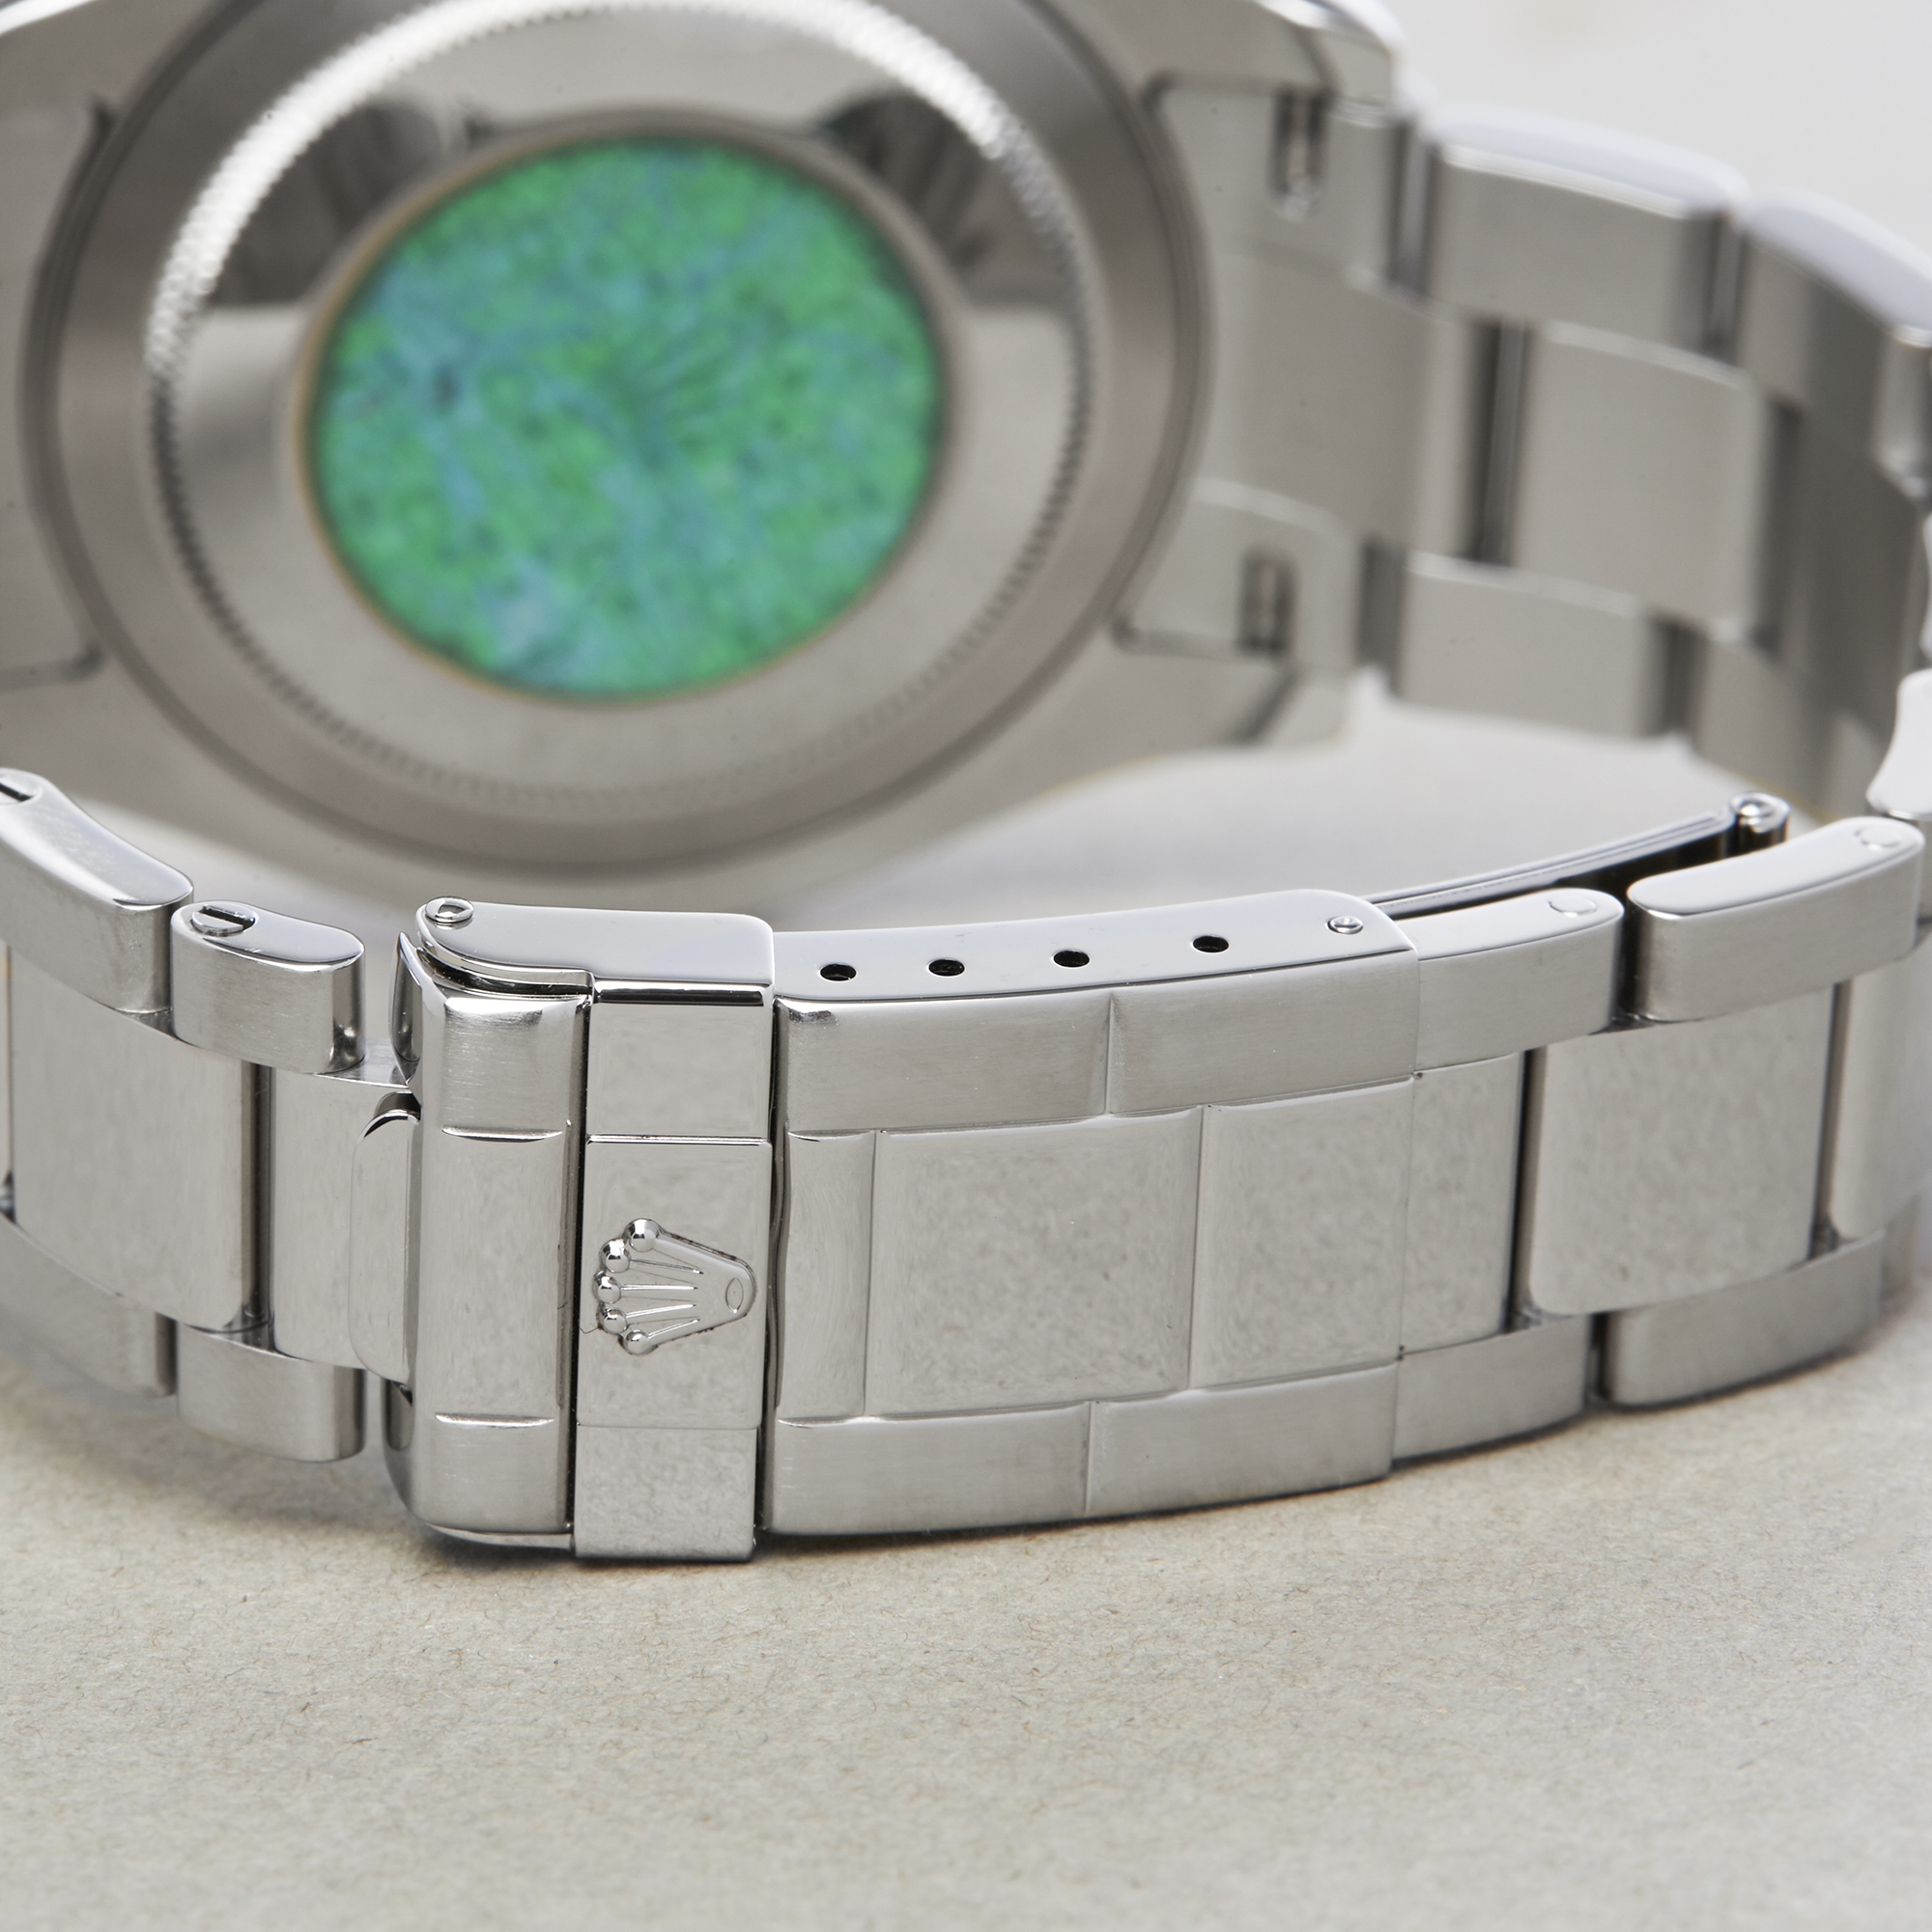 Rolex Yacht-Master 40 16622 Men's Stainless Steel Watch - Image 4 of 10